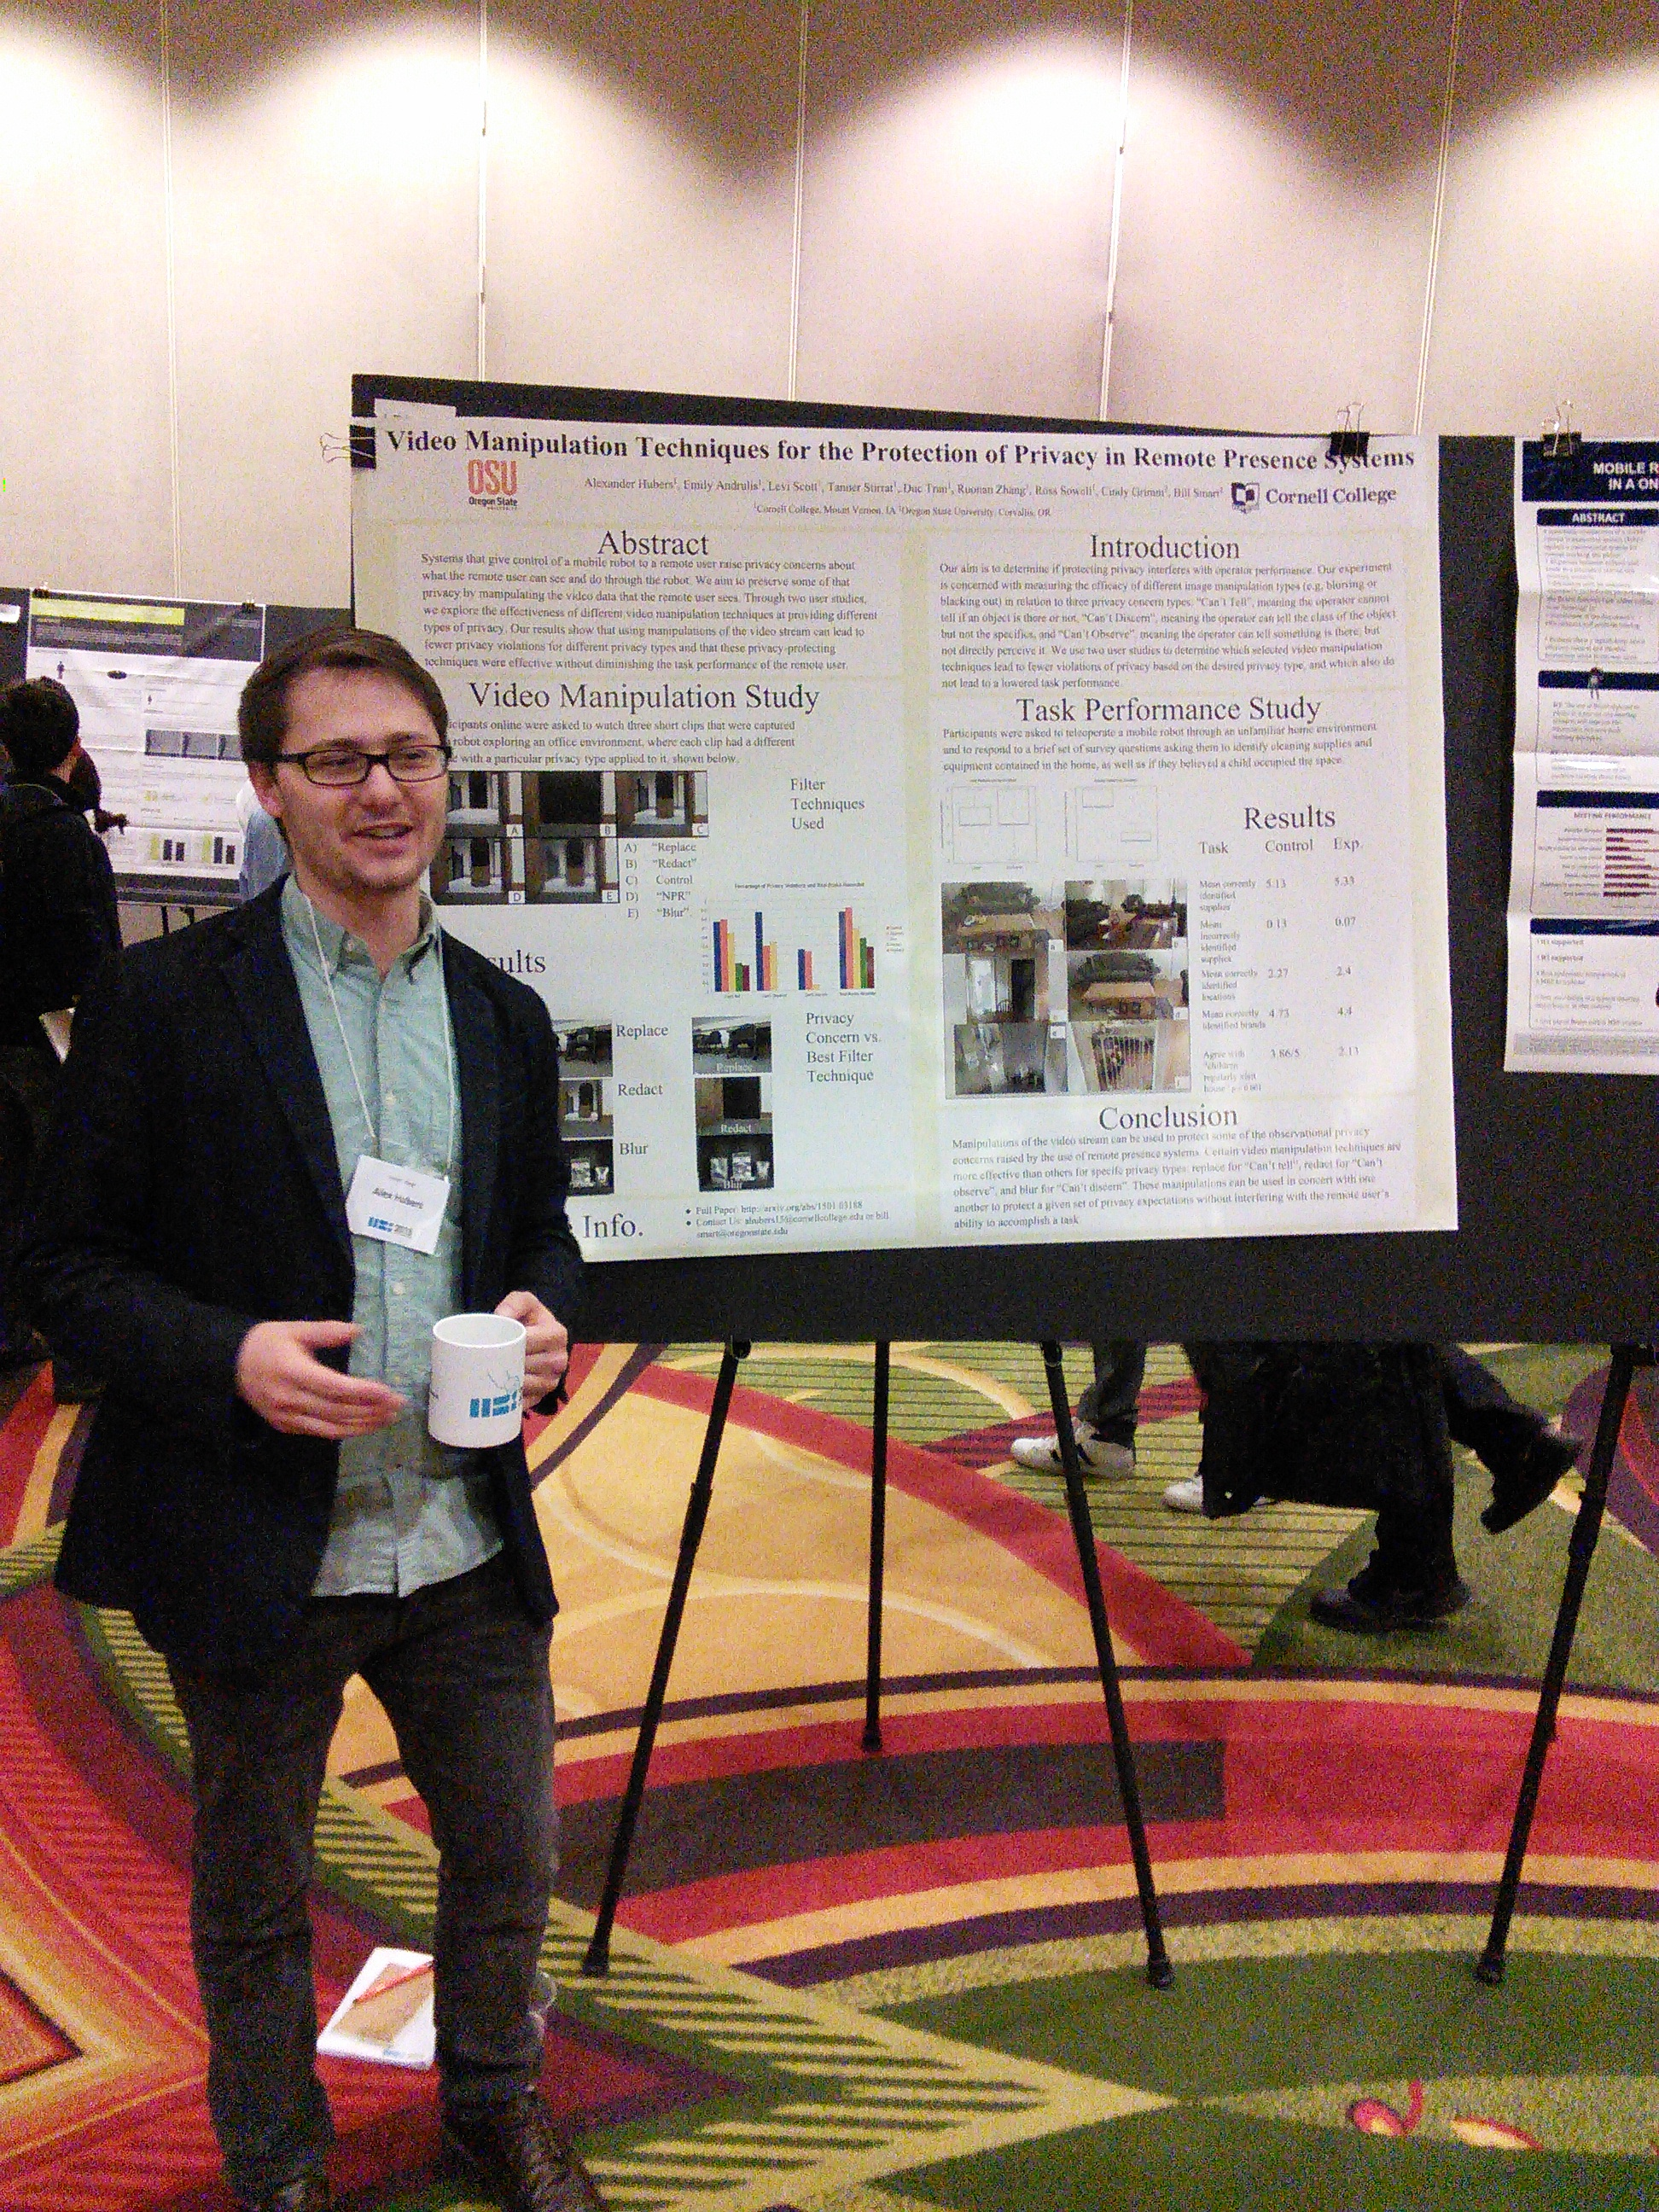 Student presents research on Human-Robot interaction - Cornell College